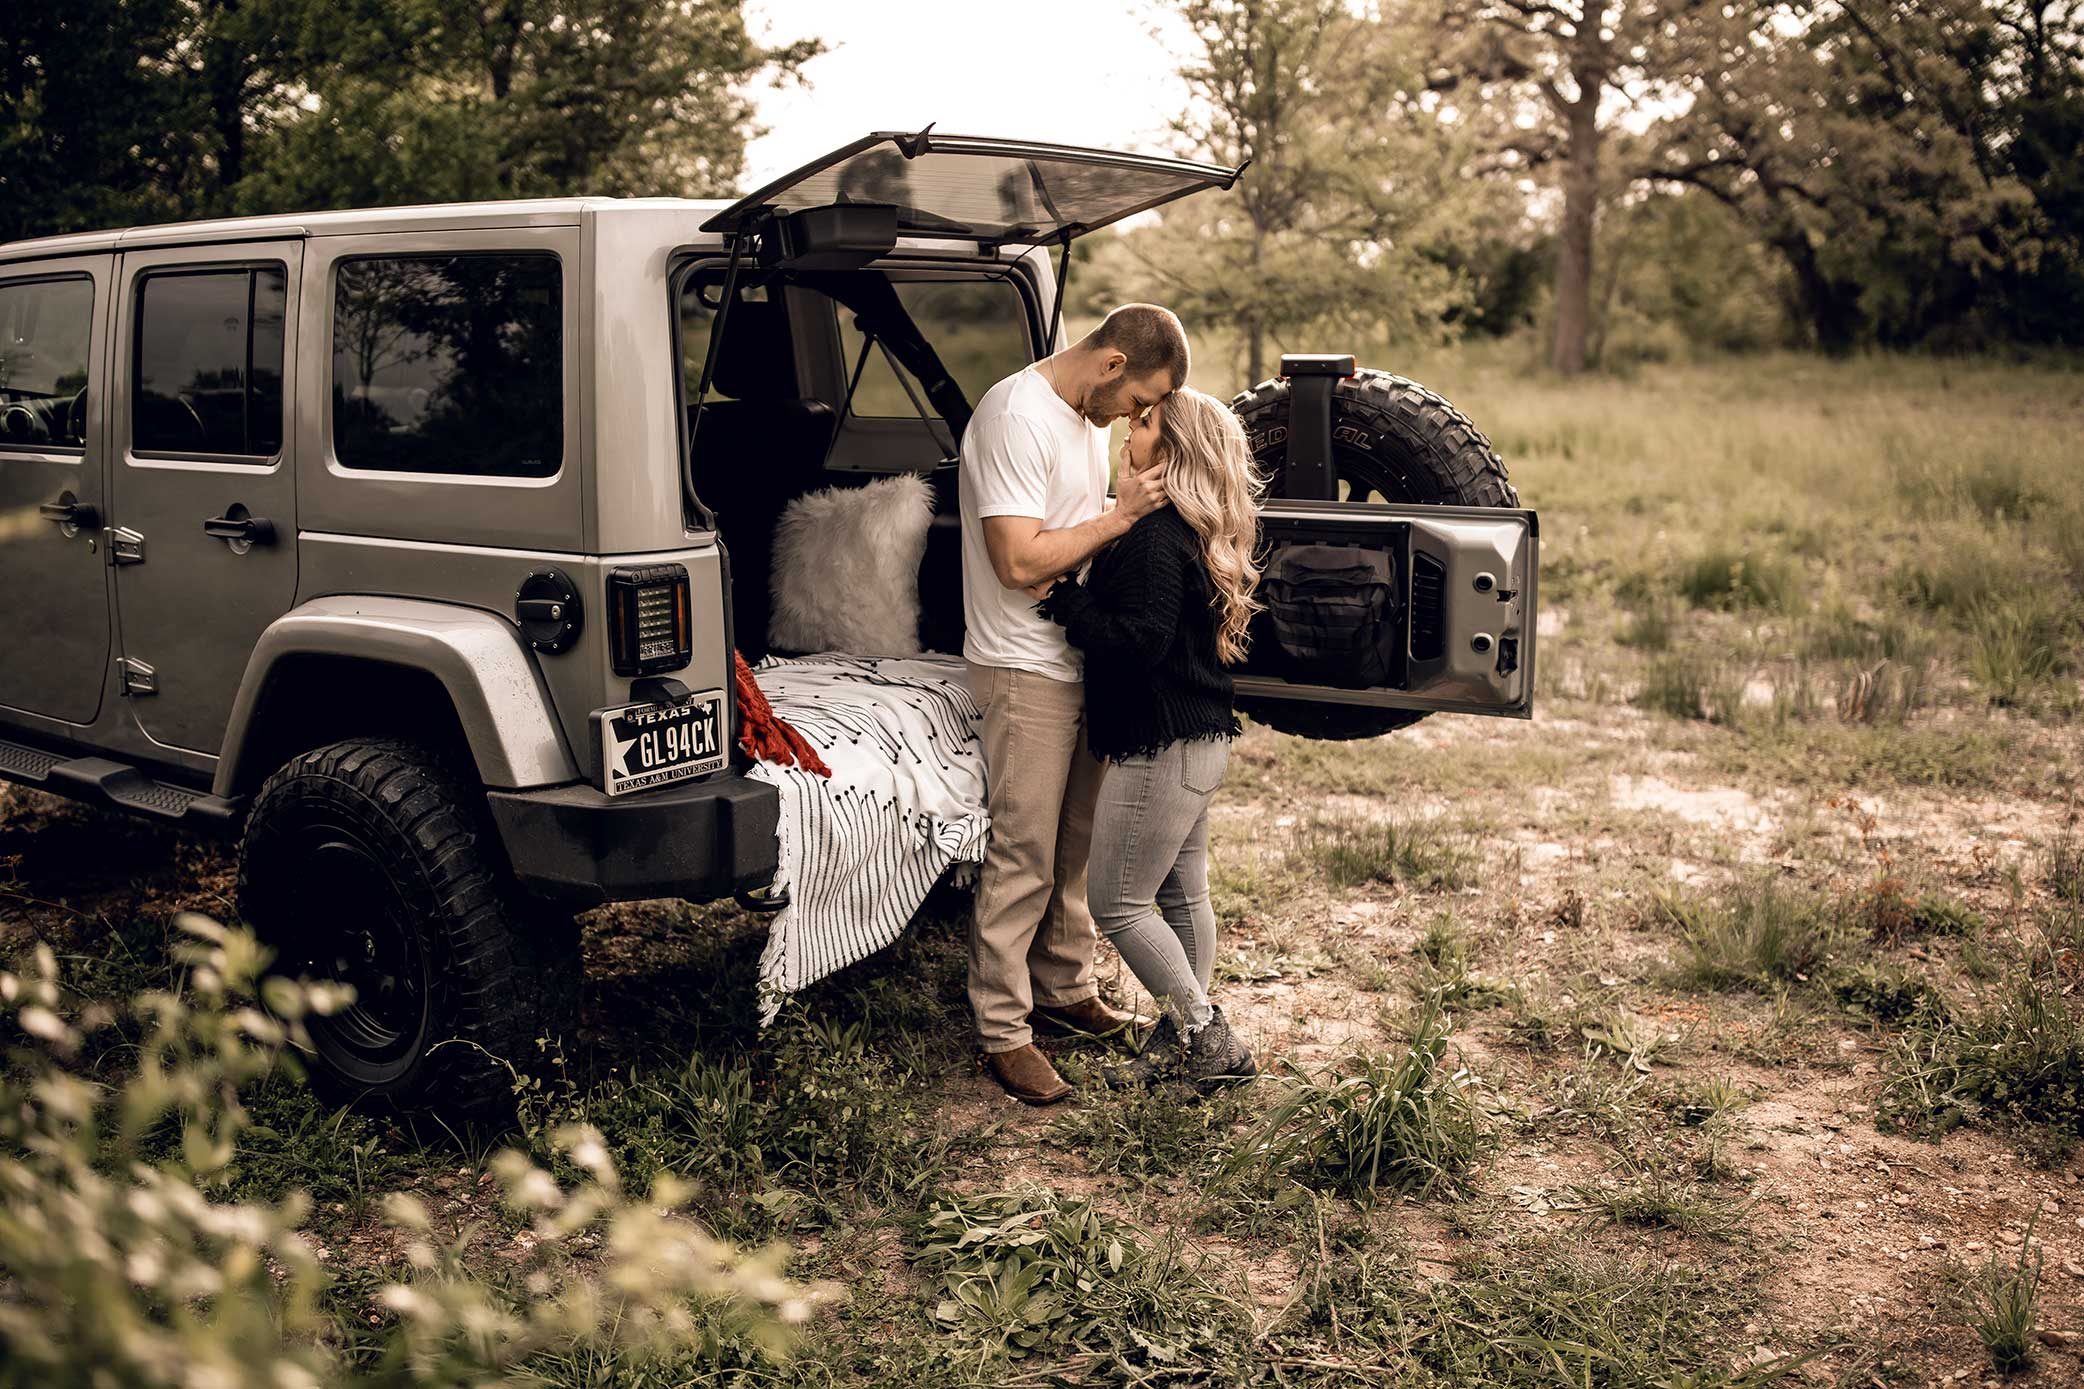 shelby-schiller-photography-lifestyle-couples-remi-colt-outdoor-jeep-adventure-6.jpg